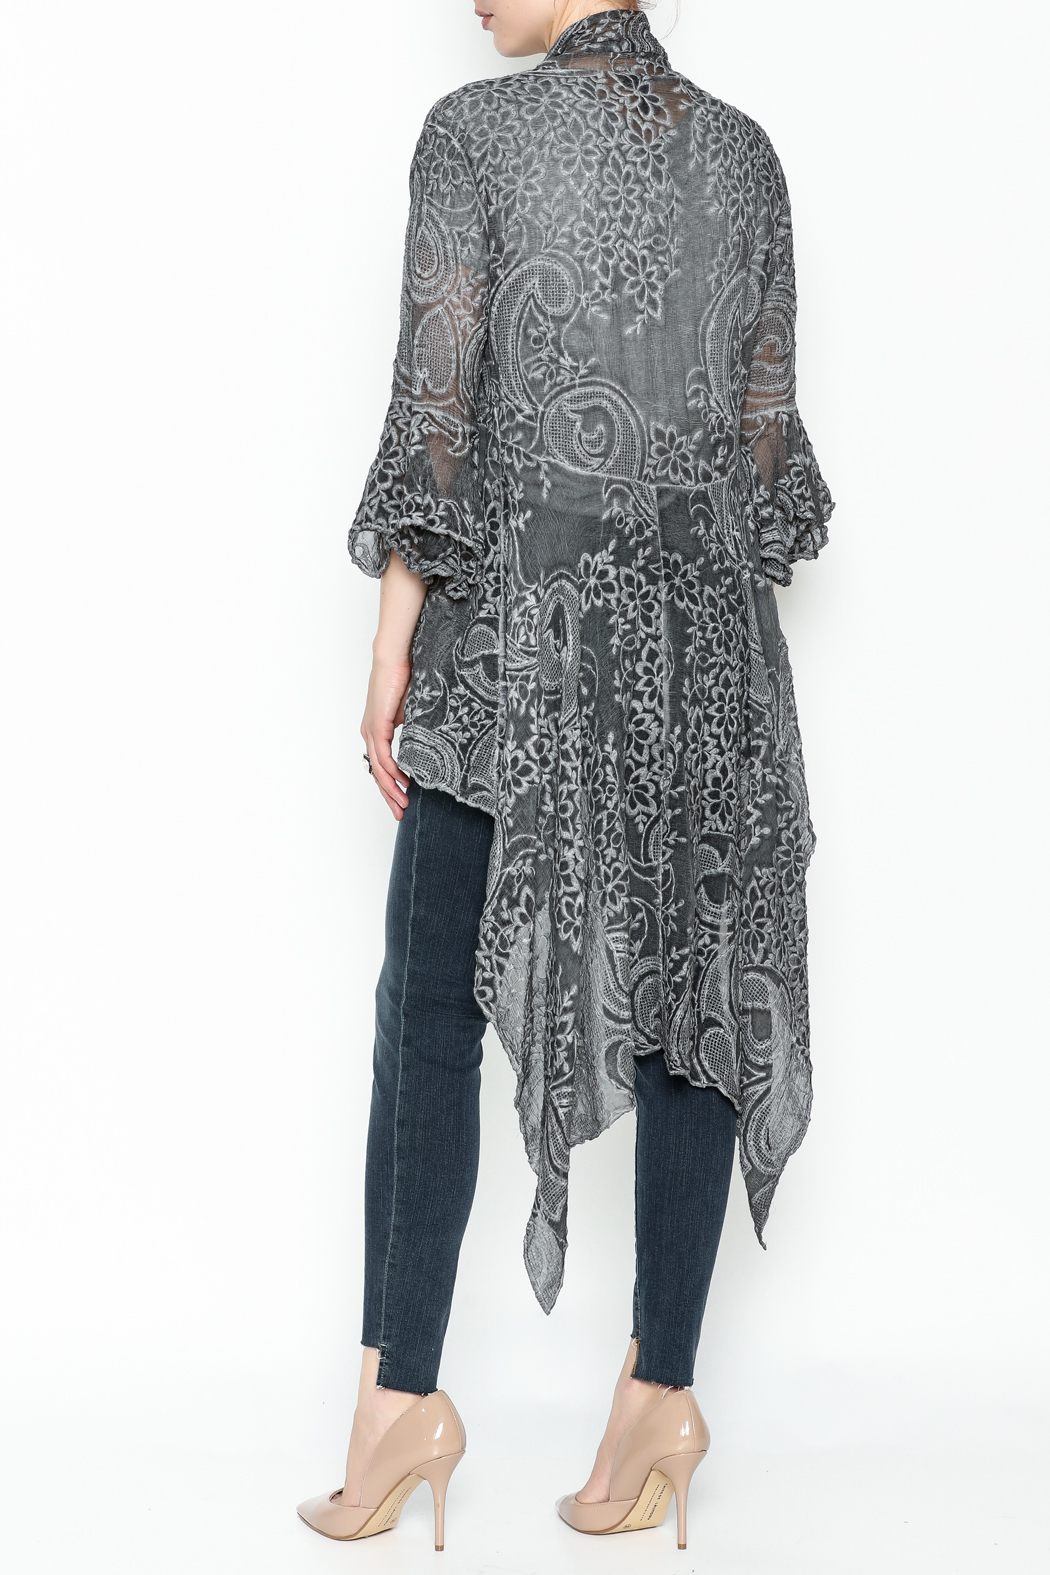 Gretty Zuegar Embroidered Silk Cardigan - Back Cropped Image